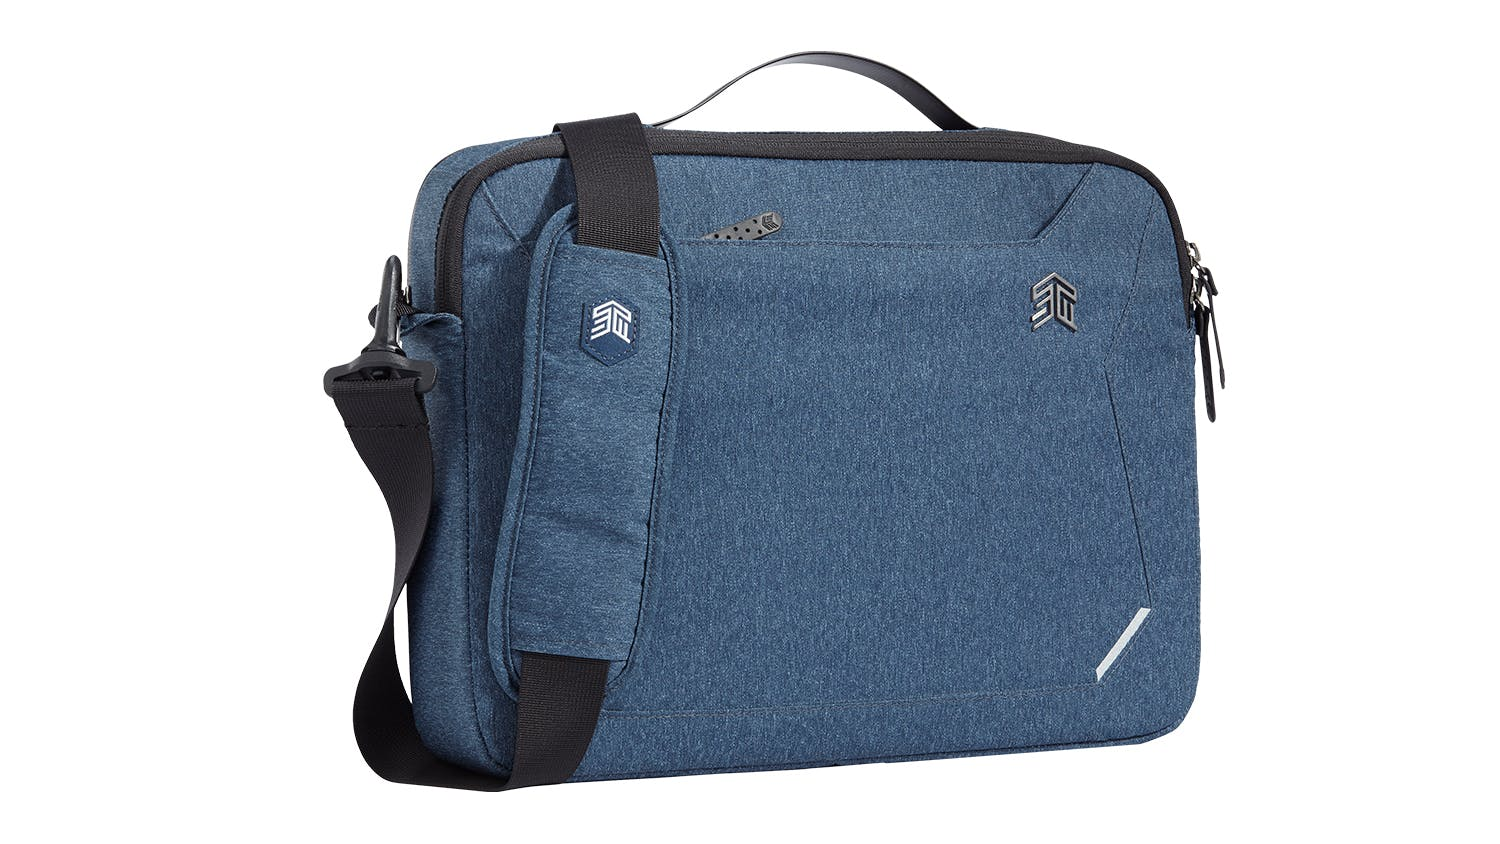 "STM Myth 15"" Laptop Bag - Slate Blue"